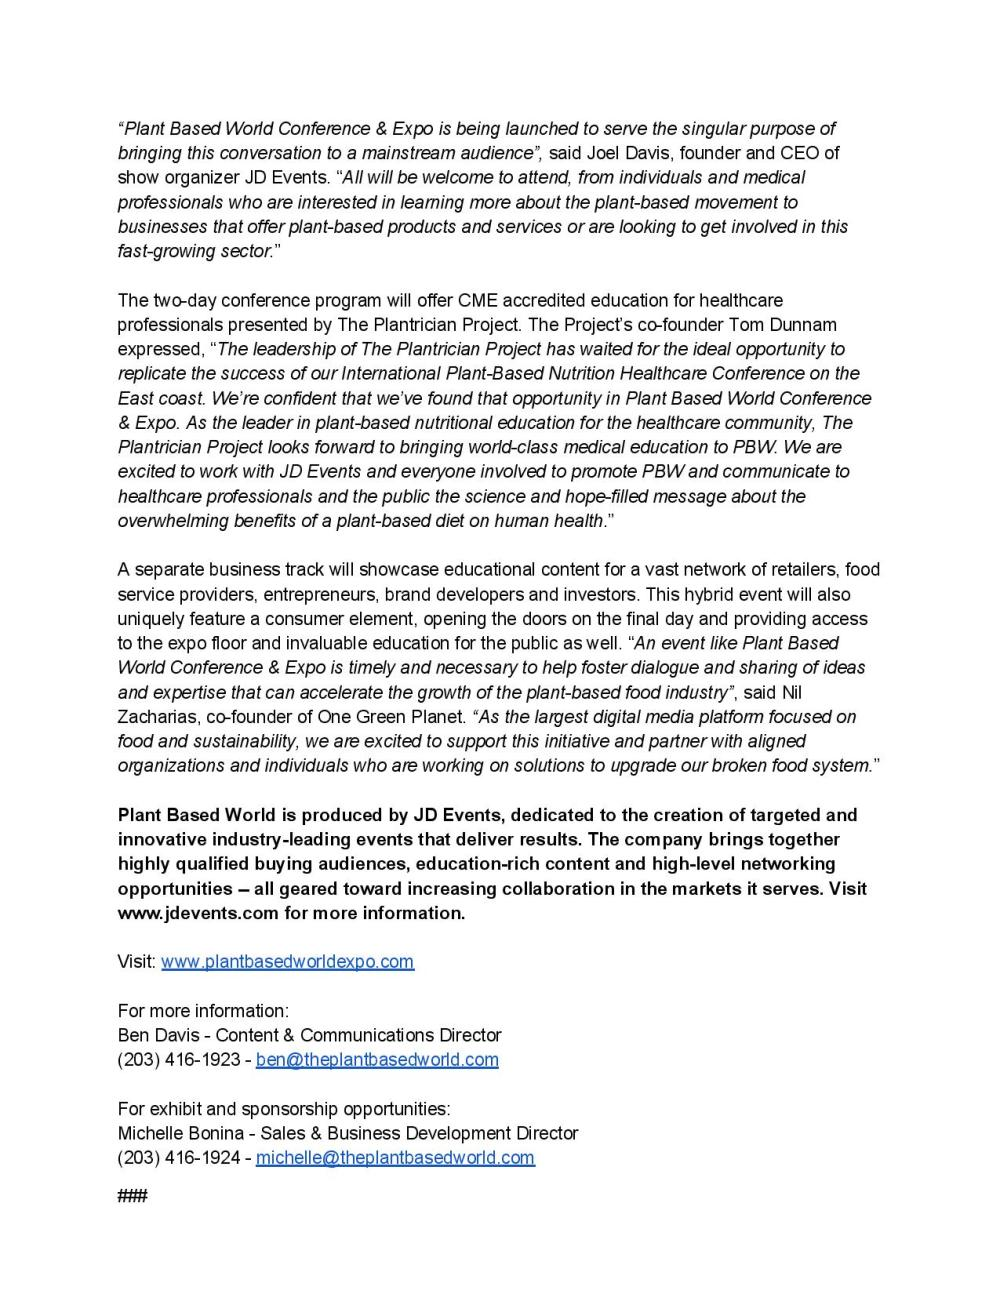 Plant Based World Press Release 5-17-page-002